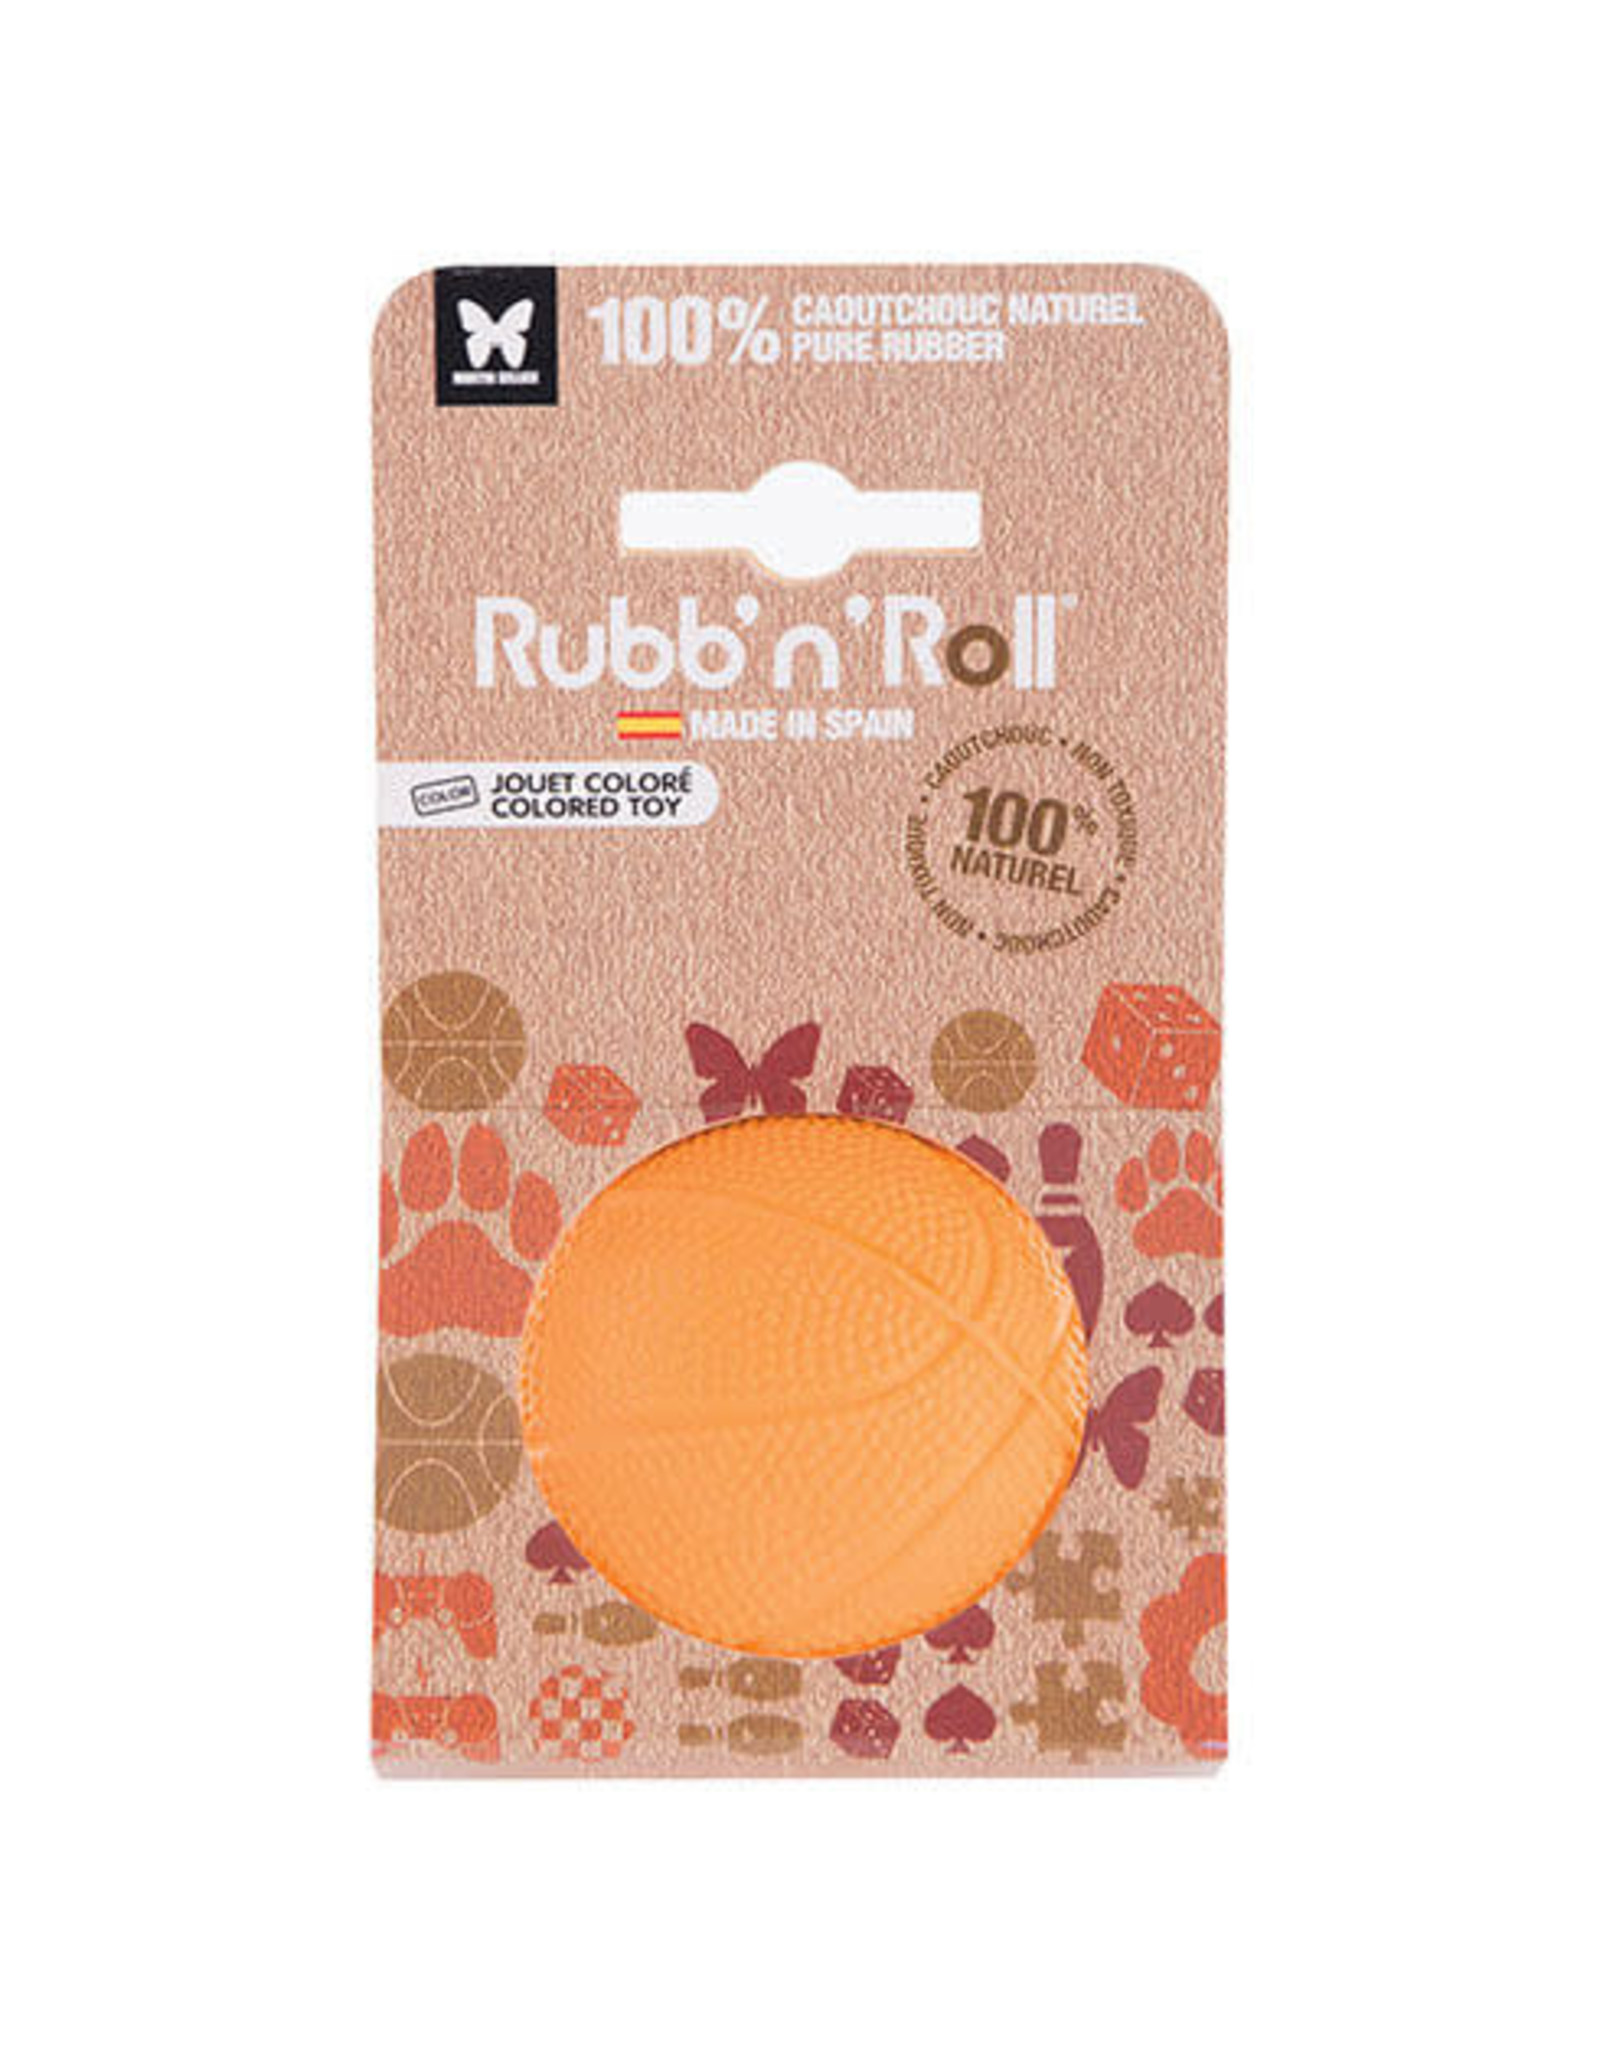 Rubb'n roll Rubb N Roll jouet balle large orange